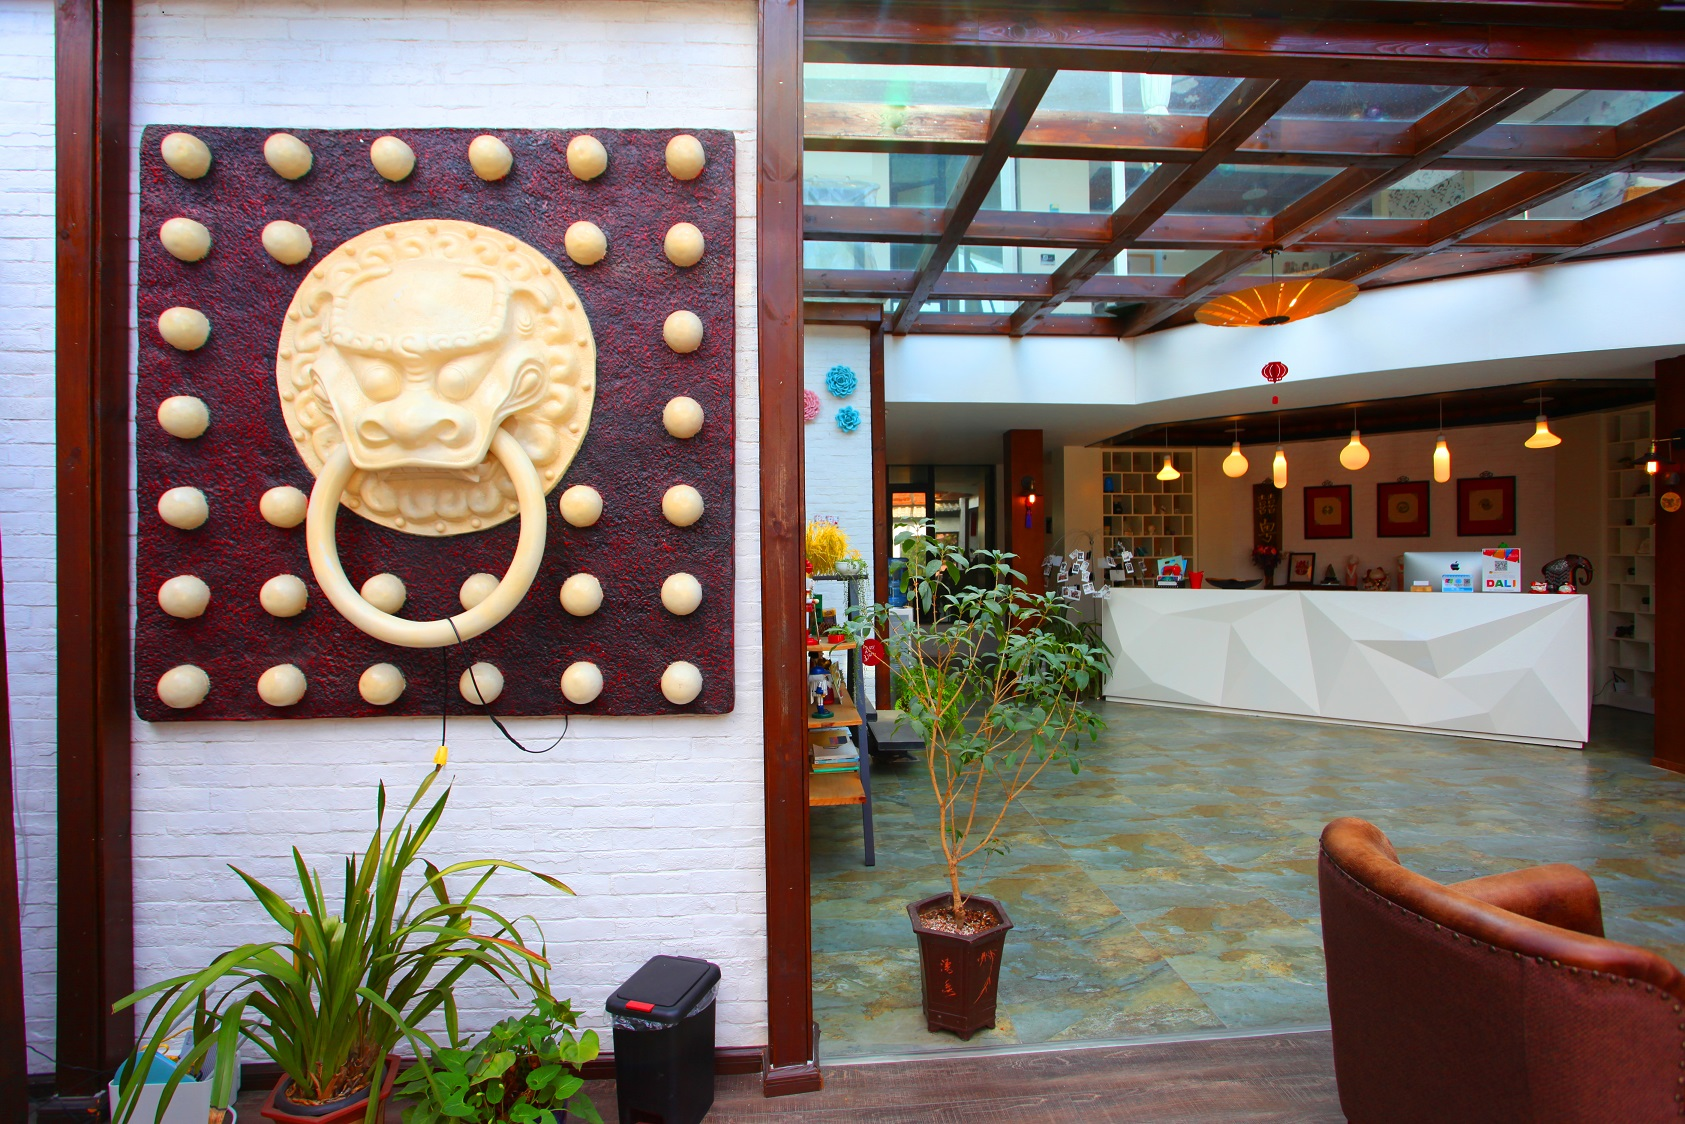 Dali Xi Yue Travelling with hotel -